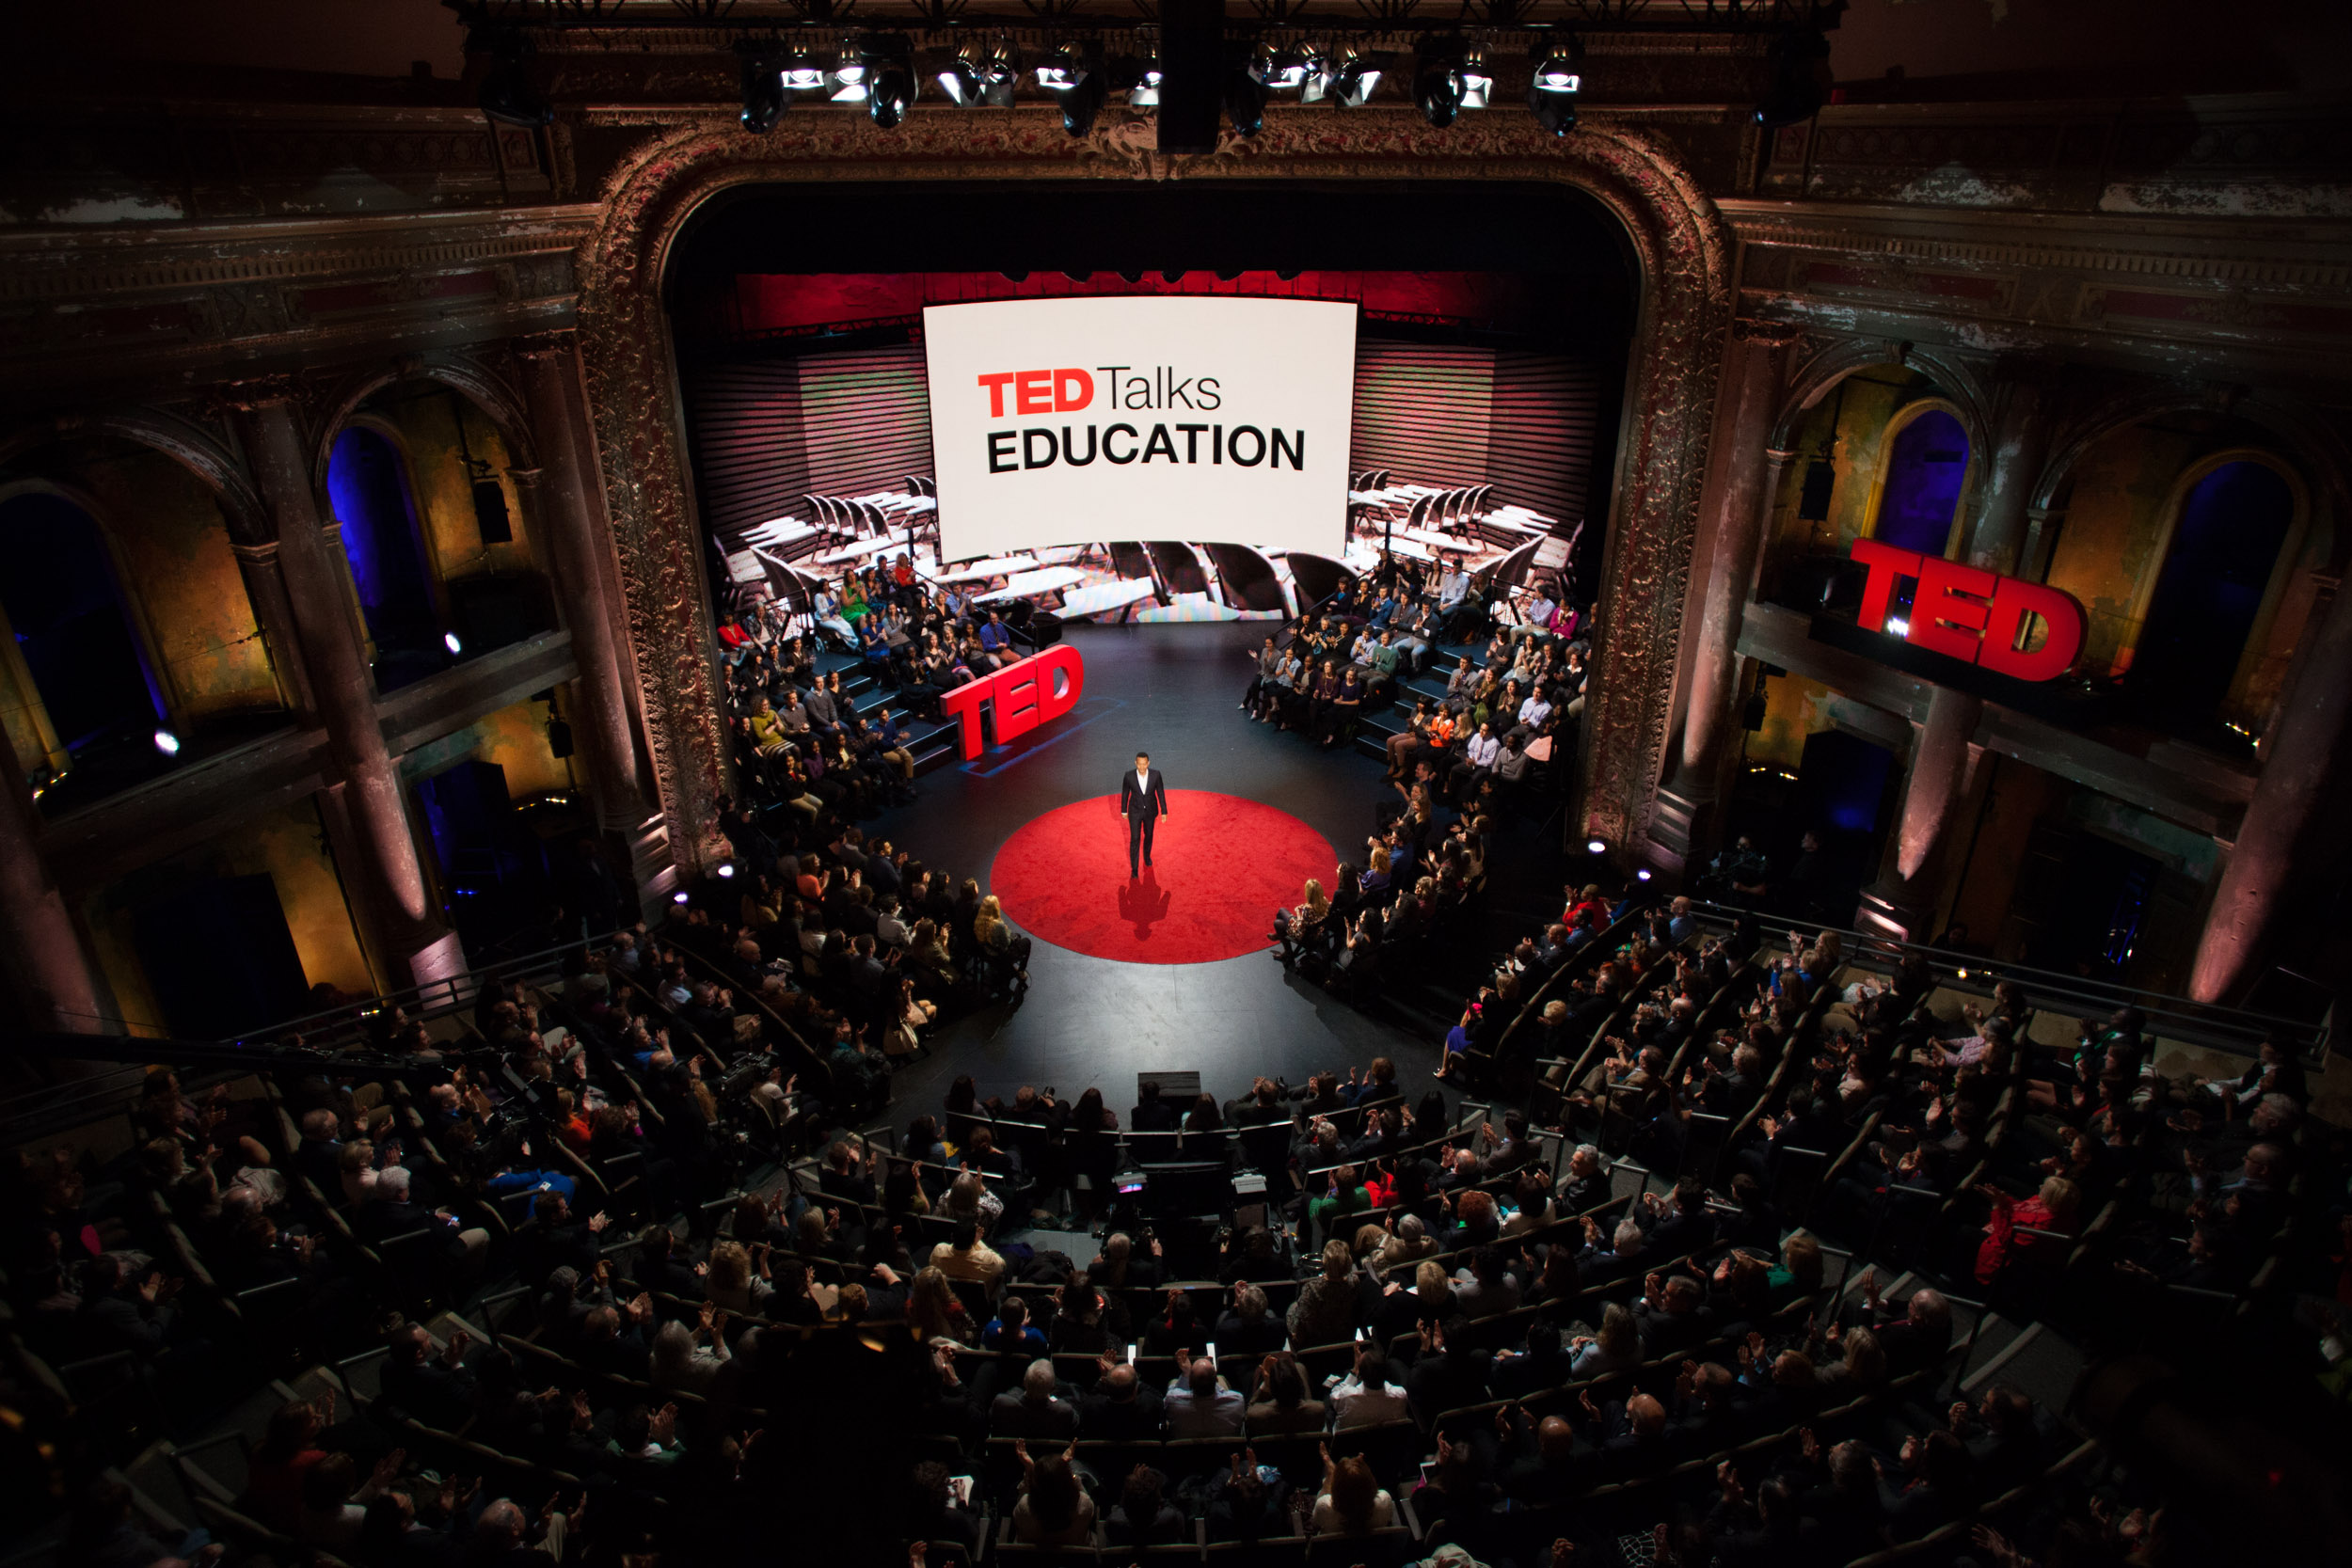 Live Multi-Camera Shoot in the style of a TED Talk